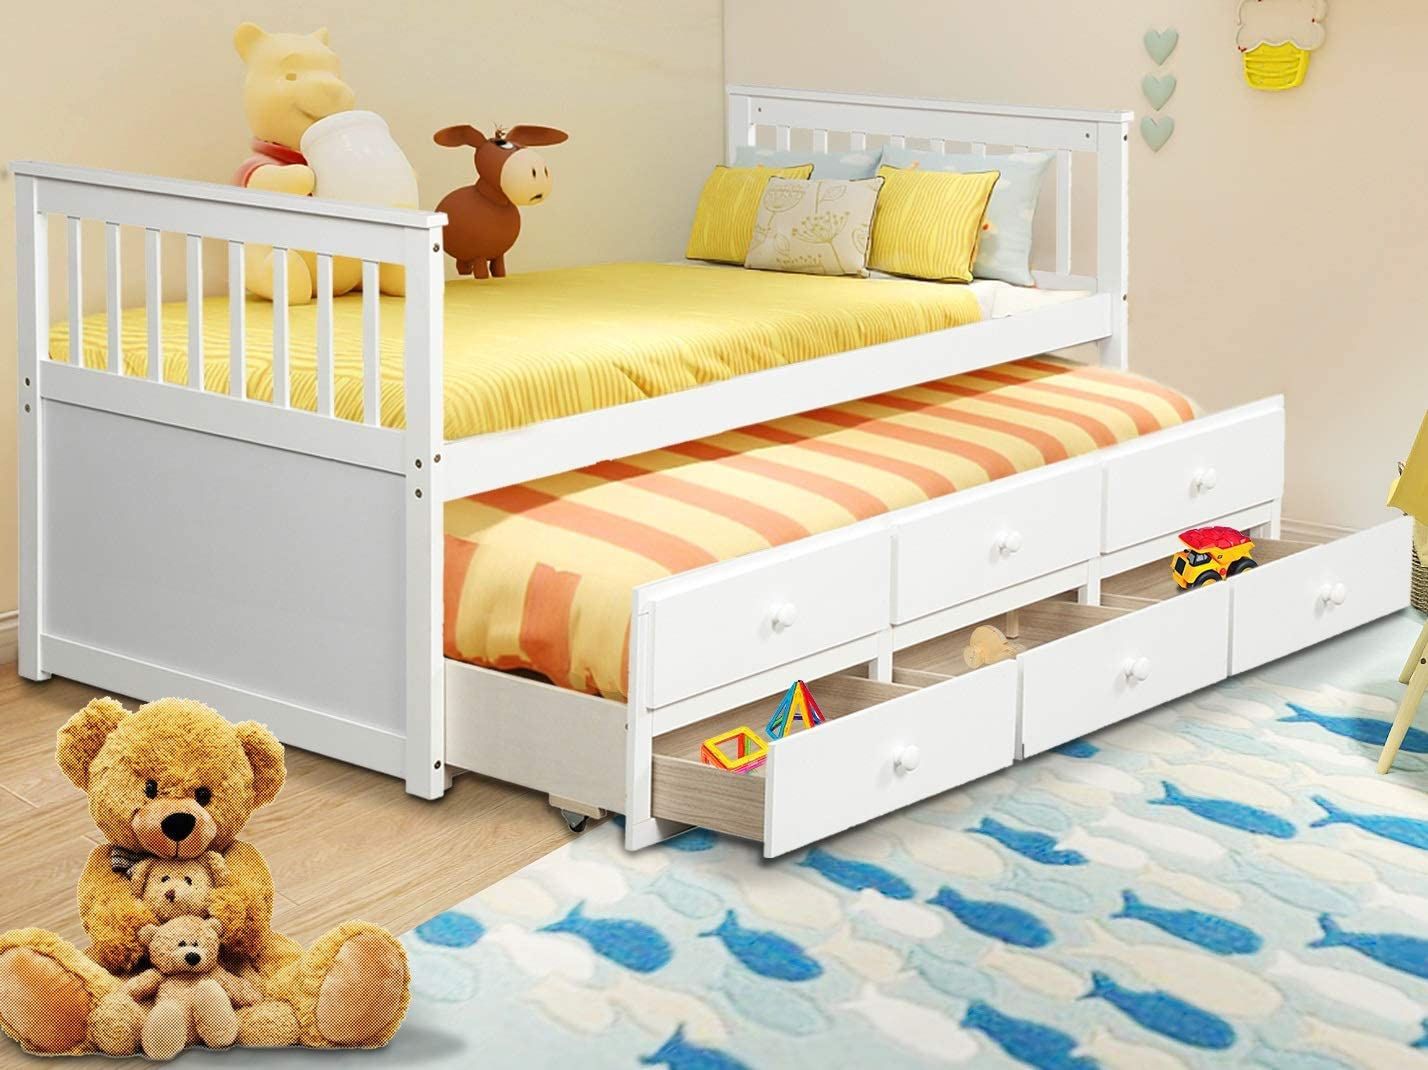 Danxee Twin Captain's Bed Storage Daybed